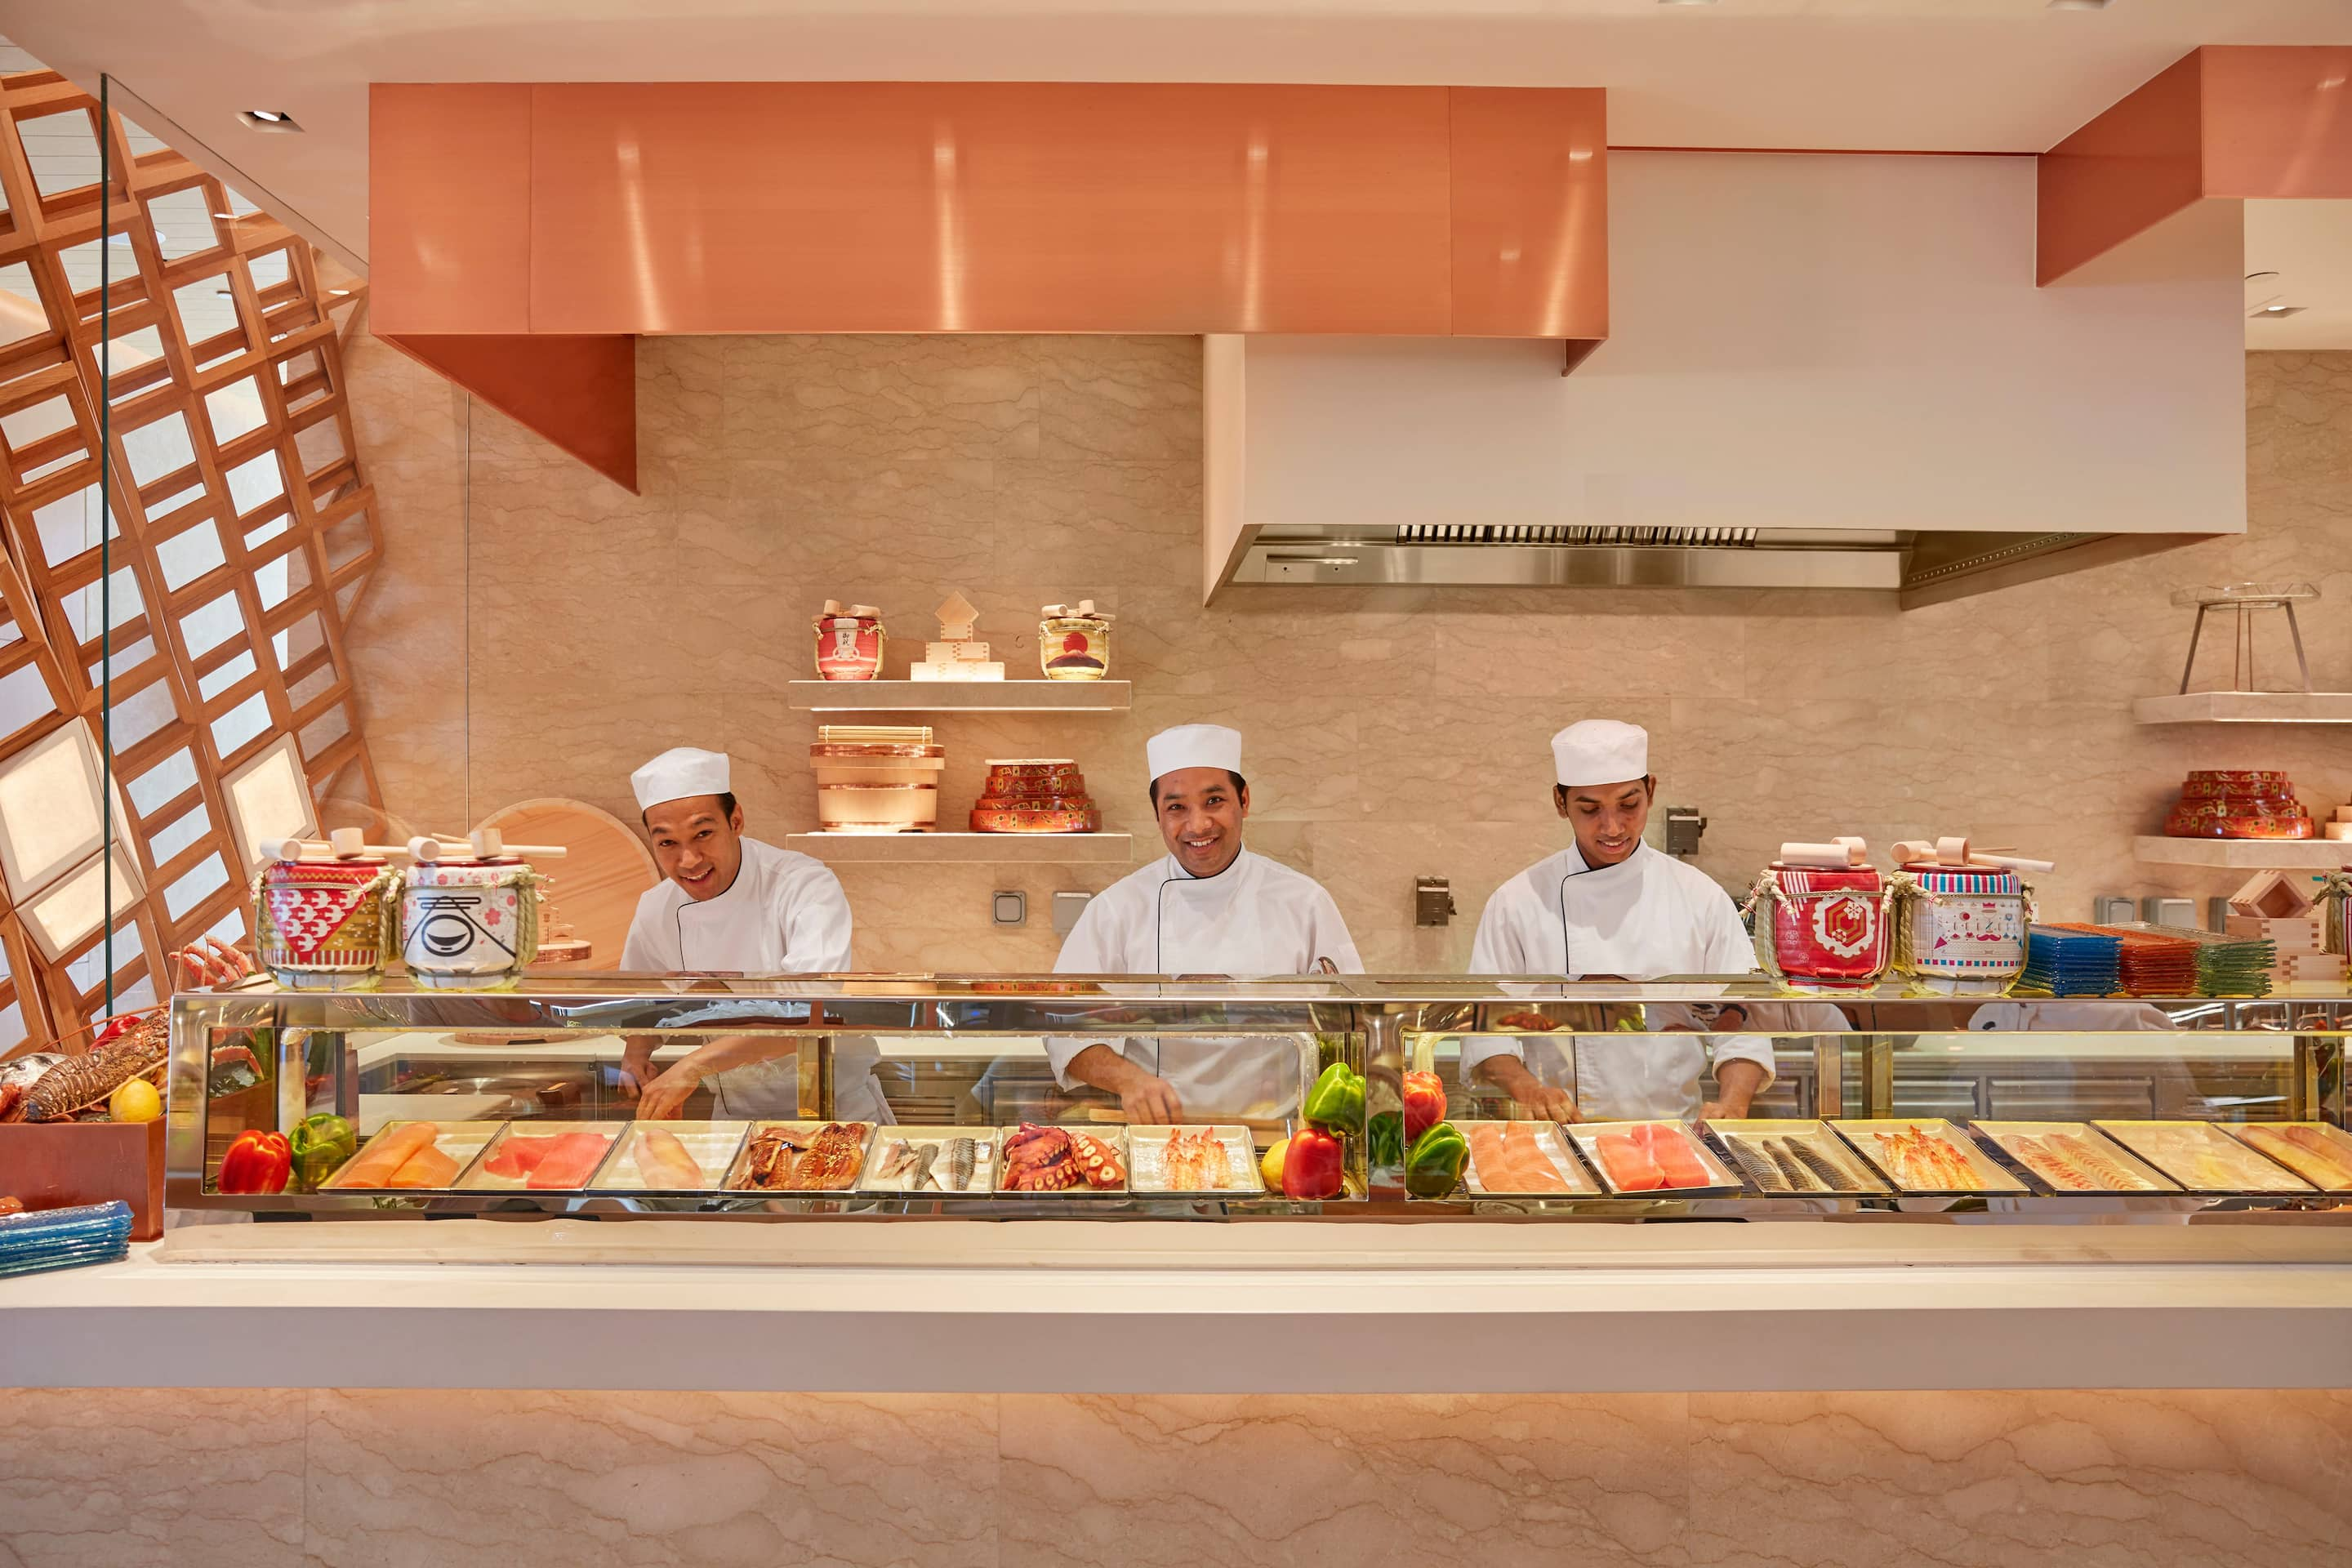 fine dining, cooking station, with chefs smiling